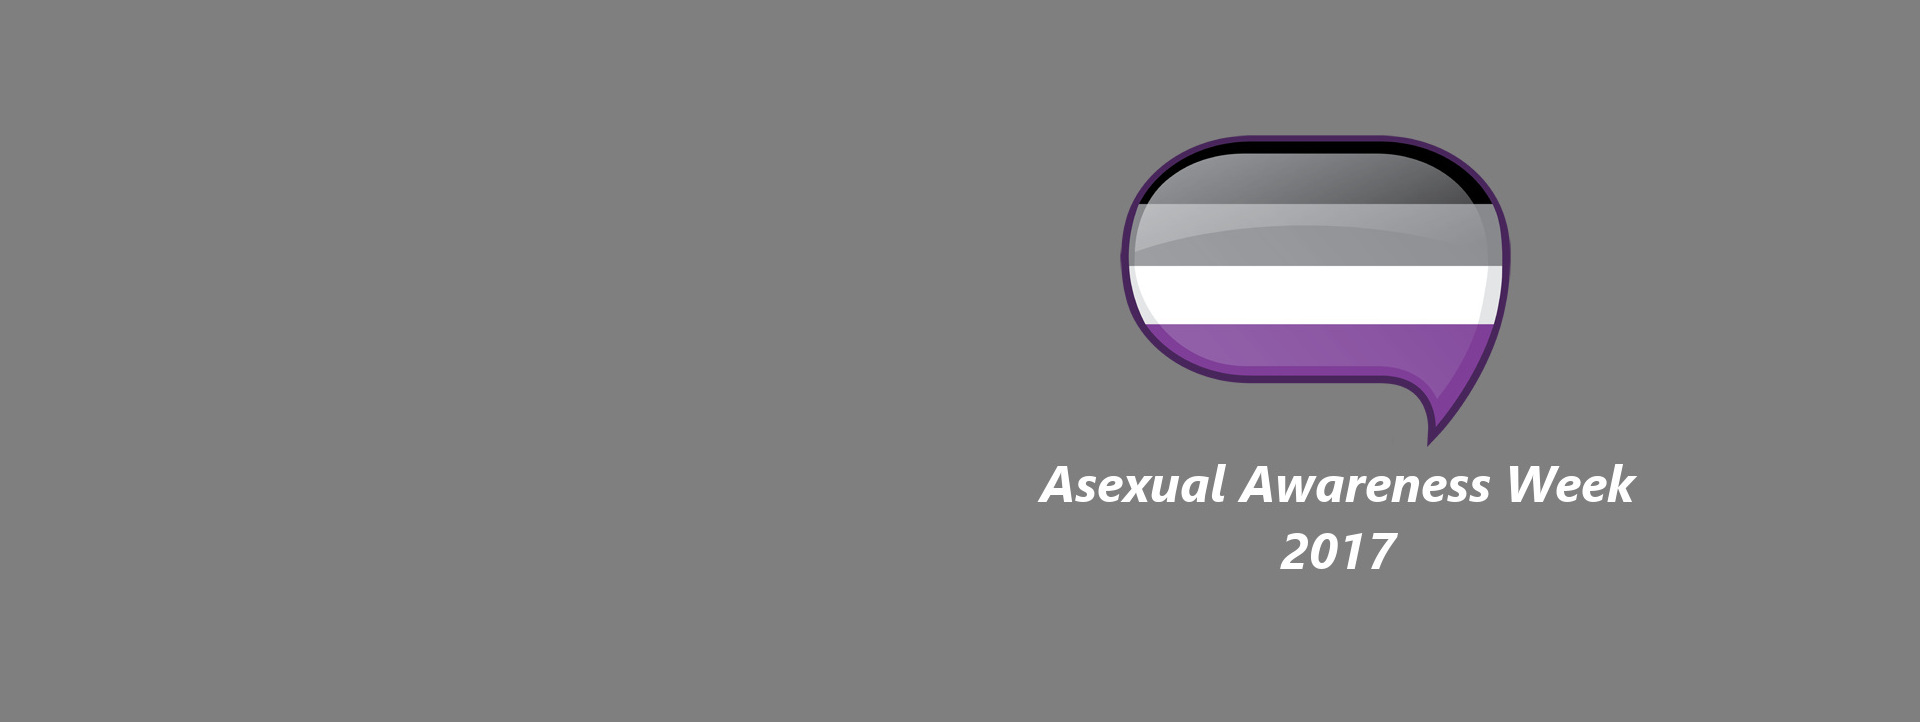 Asexual Awareness Week 2017